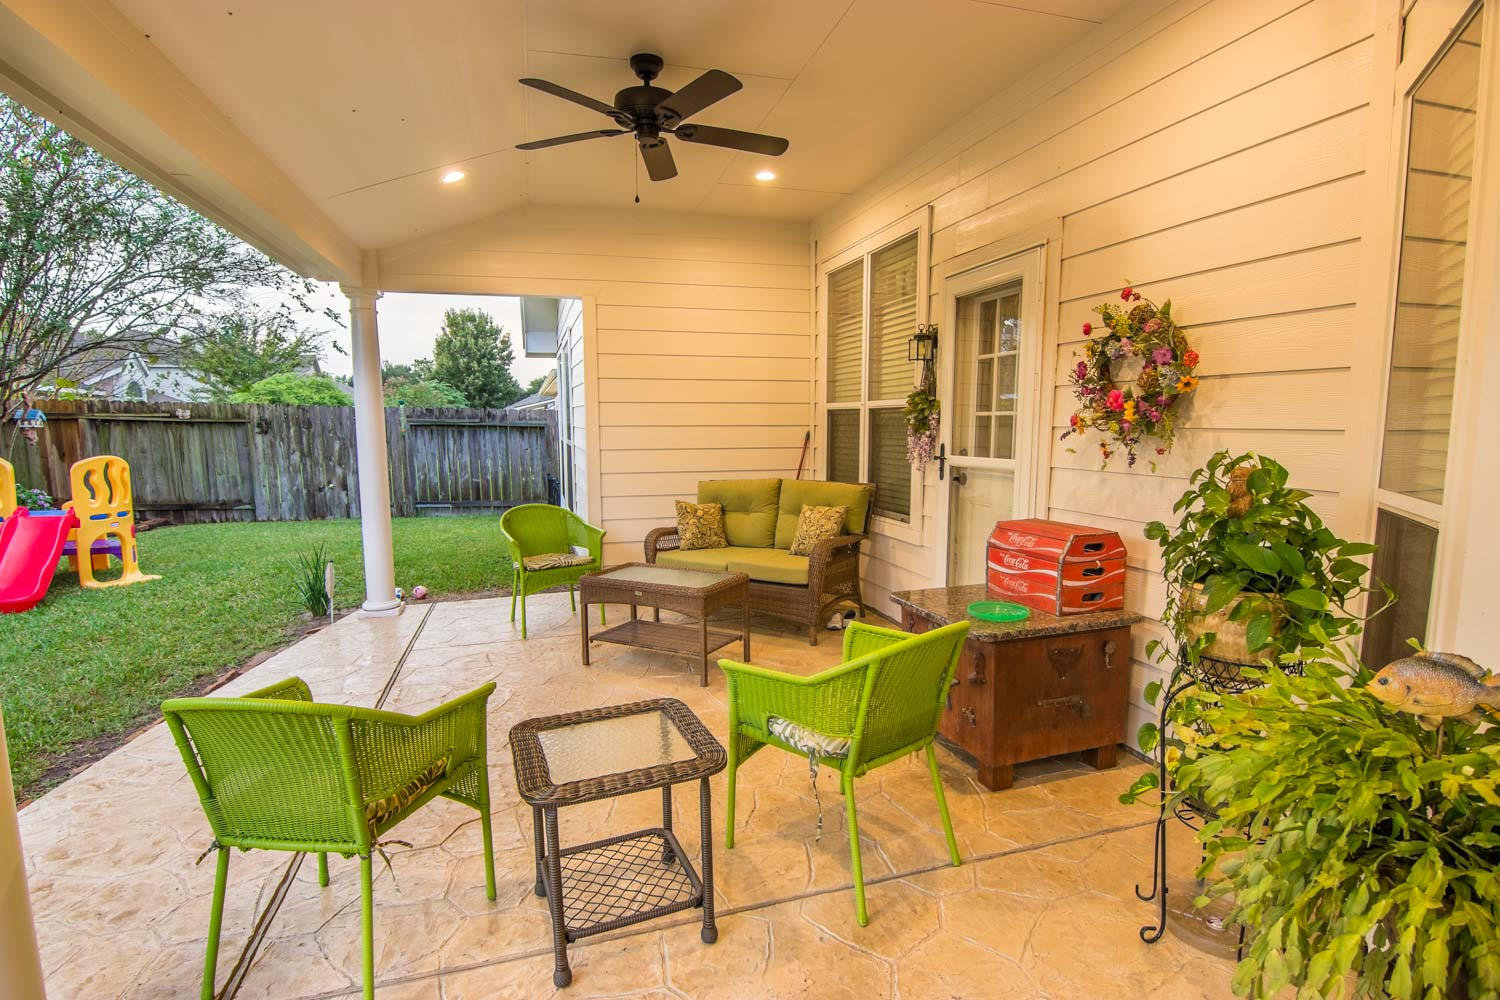 Hip Roof Patio Cover in Cypress, TX - HHI Patio Covers